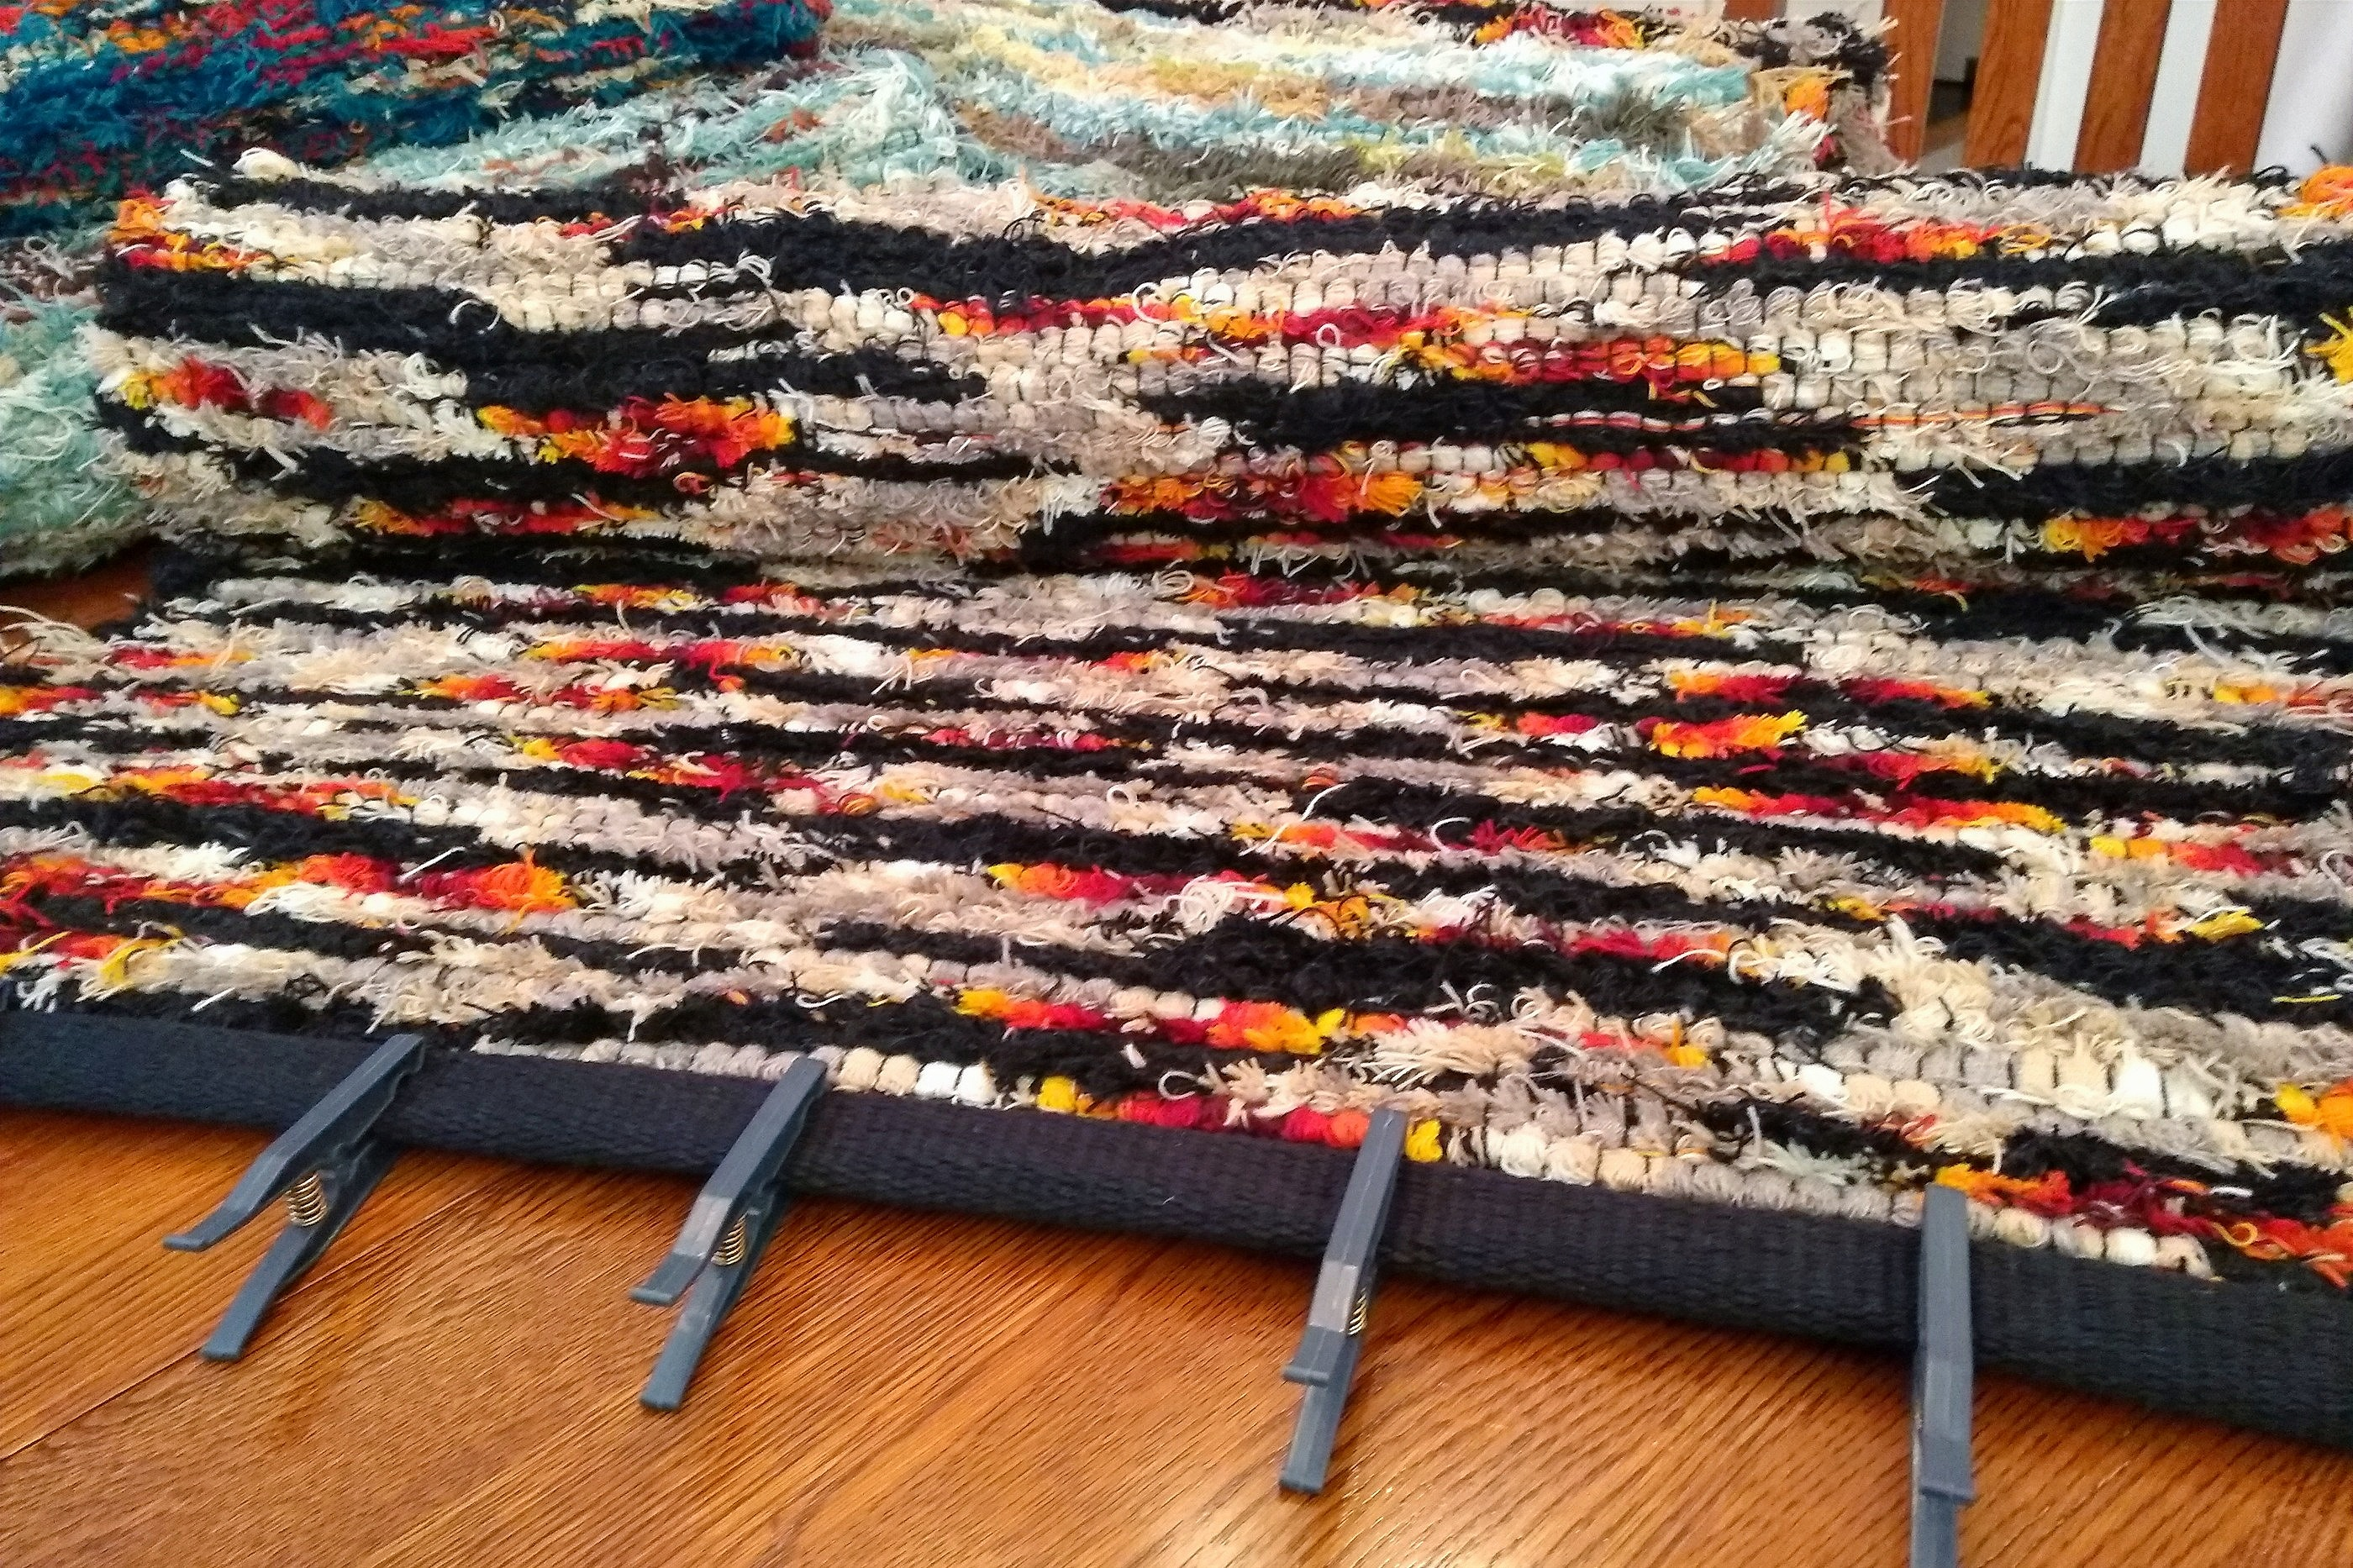 Preparing a rug for hemming on my sewing machine.